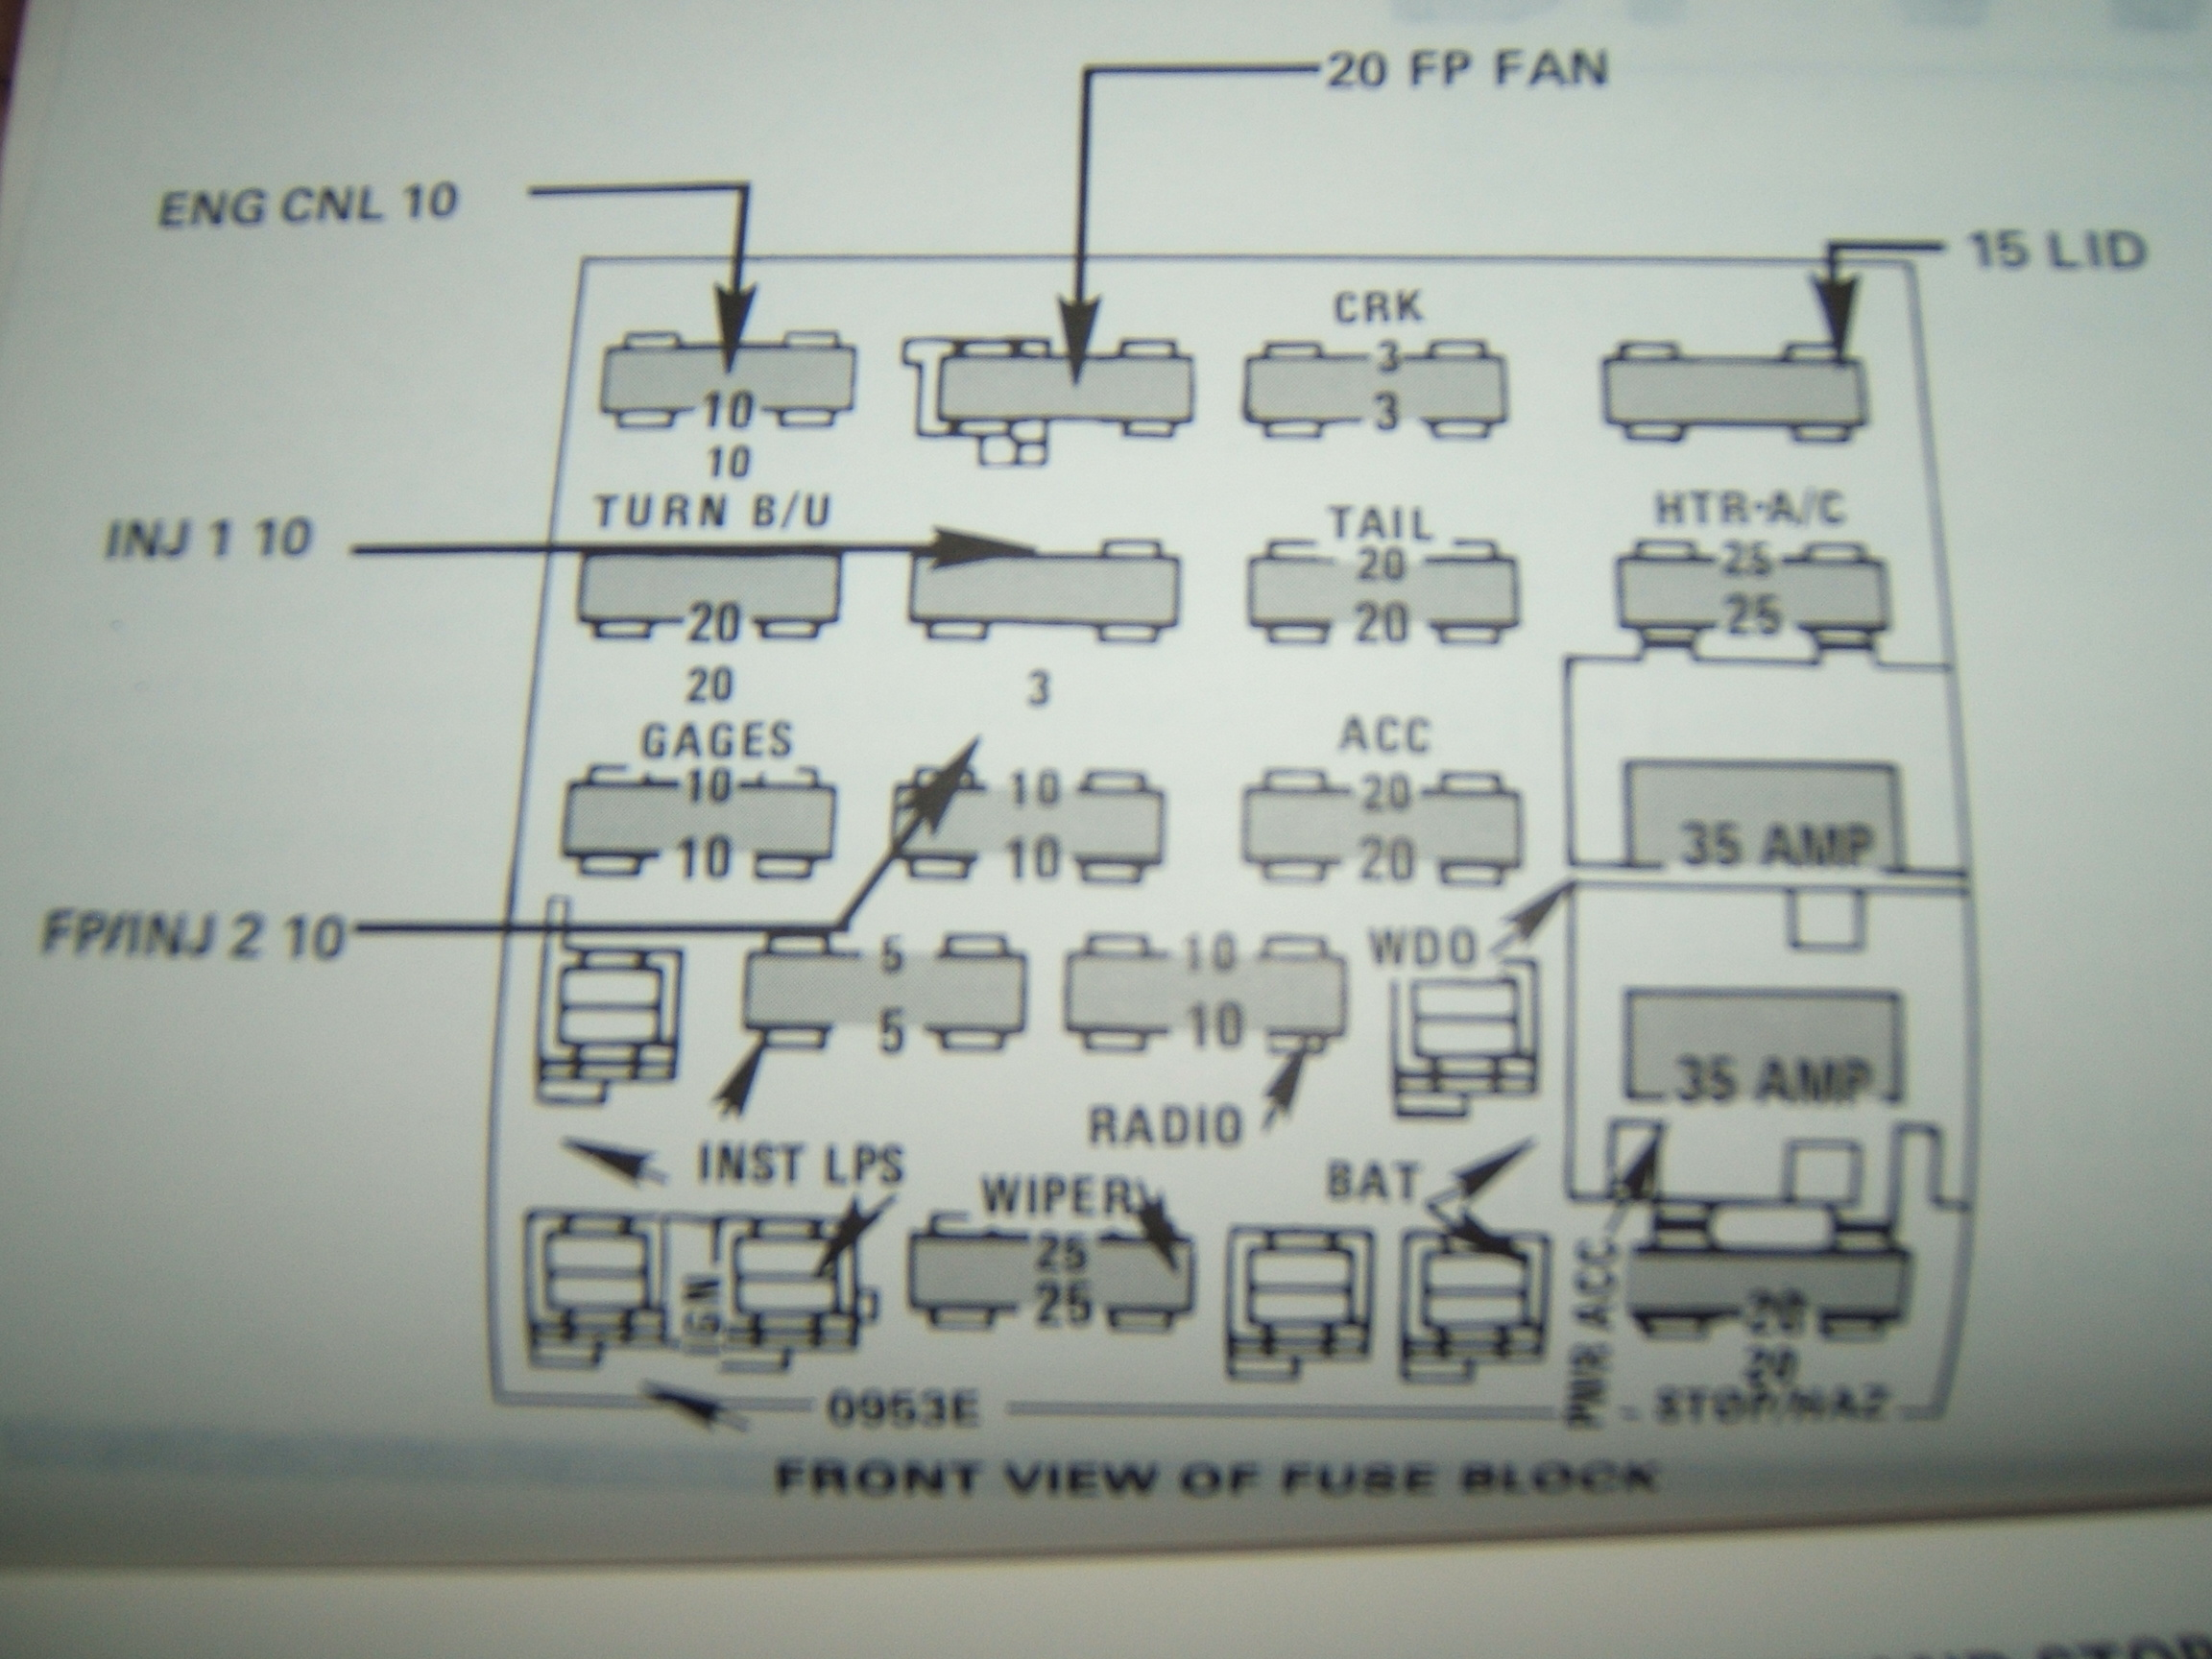 1988 Camaro Fuse Box - Wiring Diagram SchemesWiring Diagram Schemes - Mein-Raetien